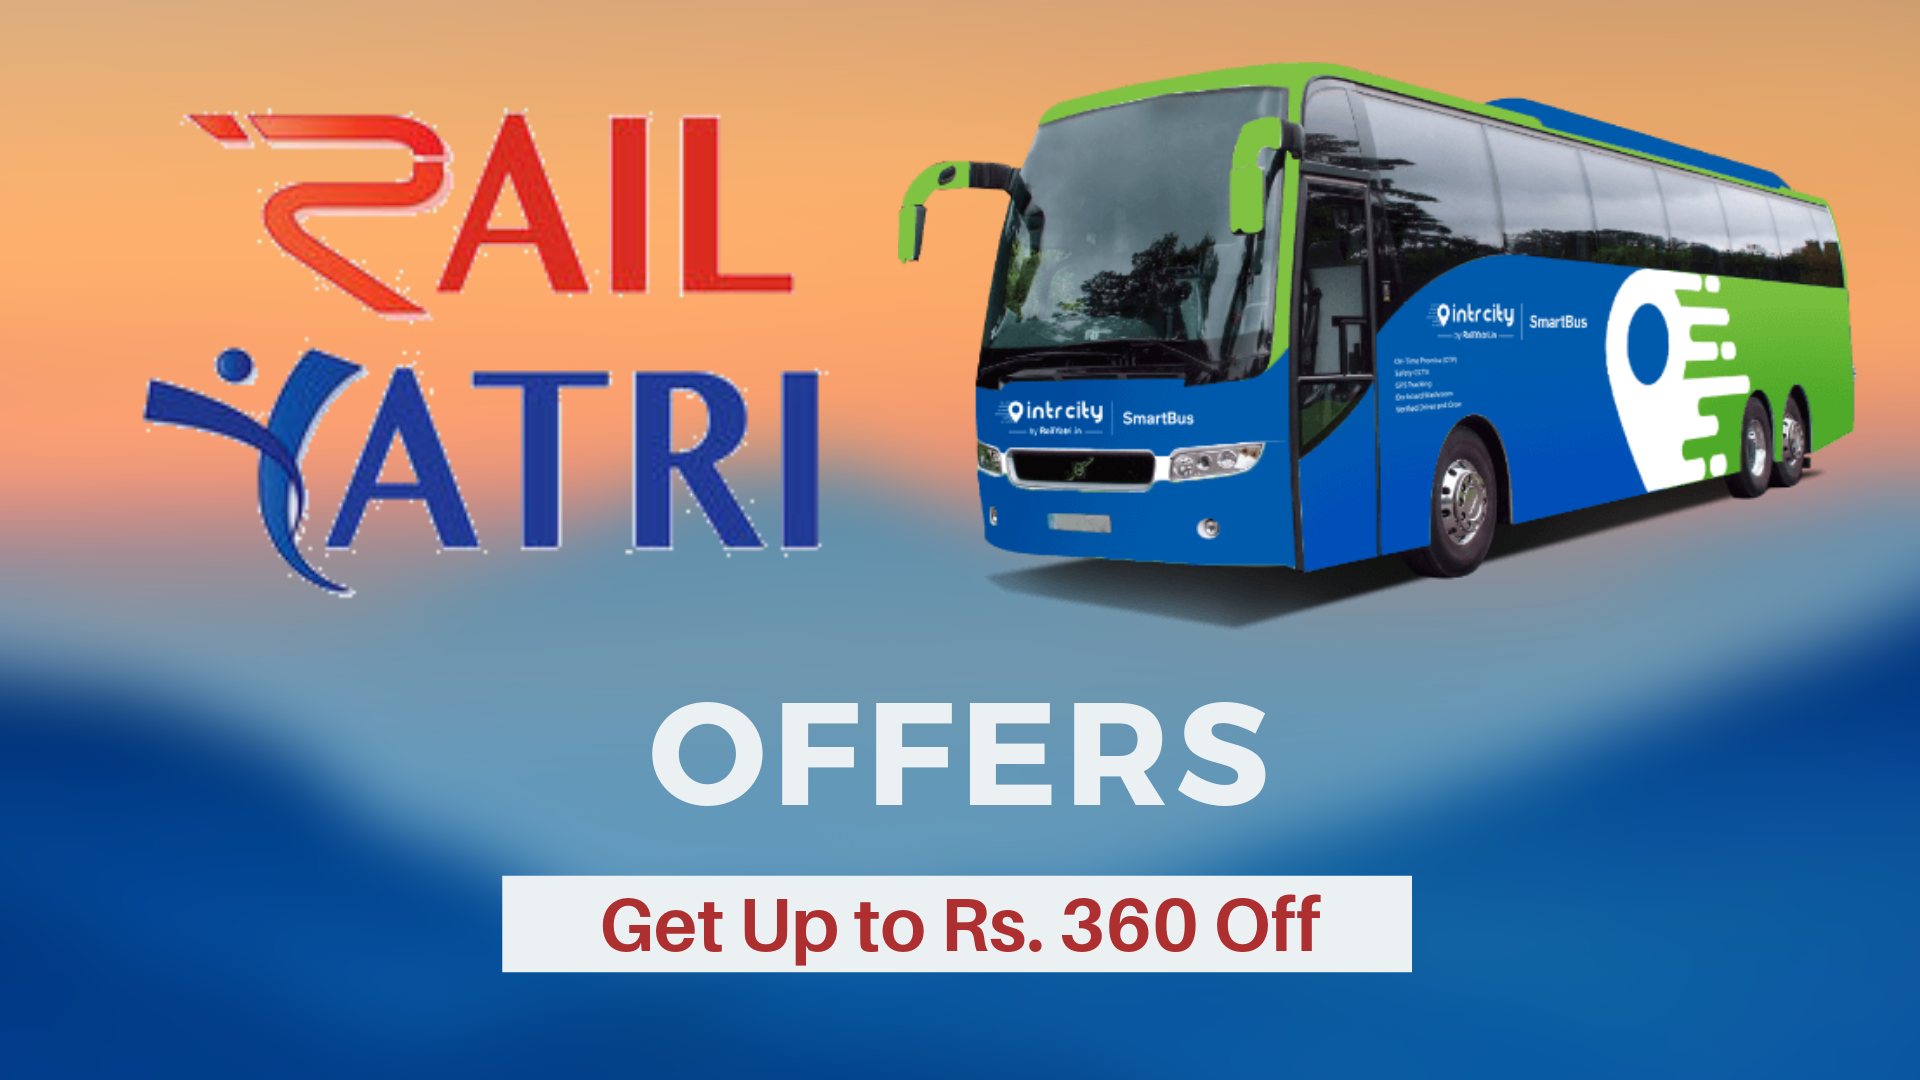 Railyatri Offers